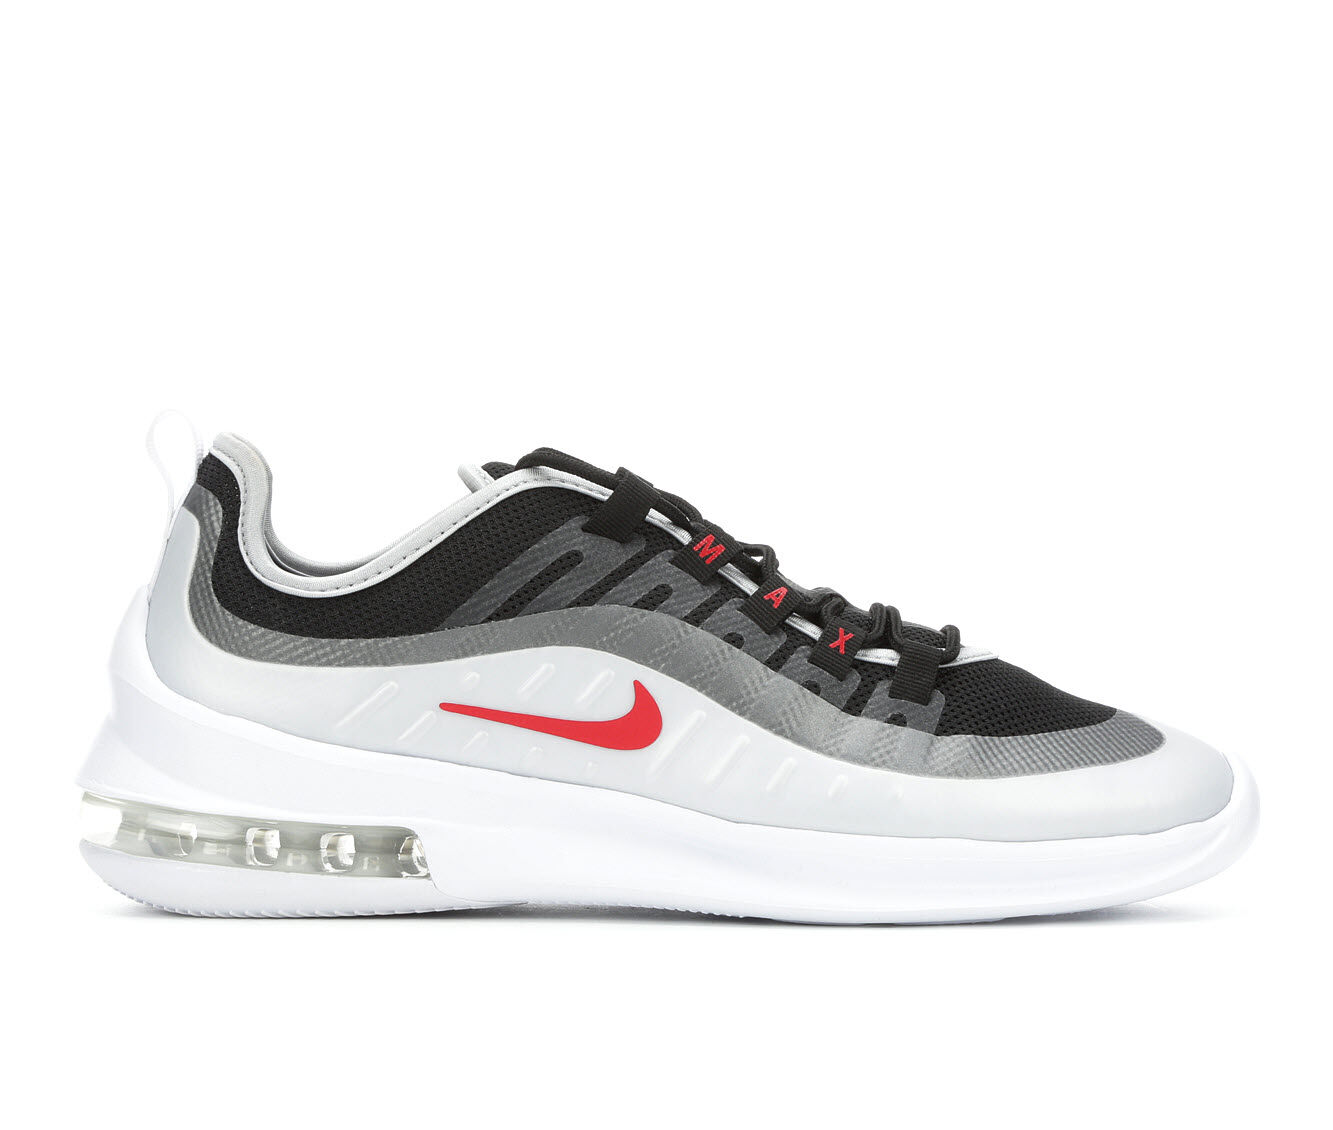 Men's Nike Air Max Axis Running Shoes Wht/Blk/Red 009